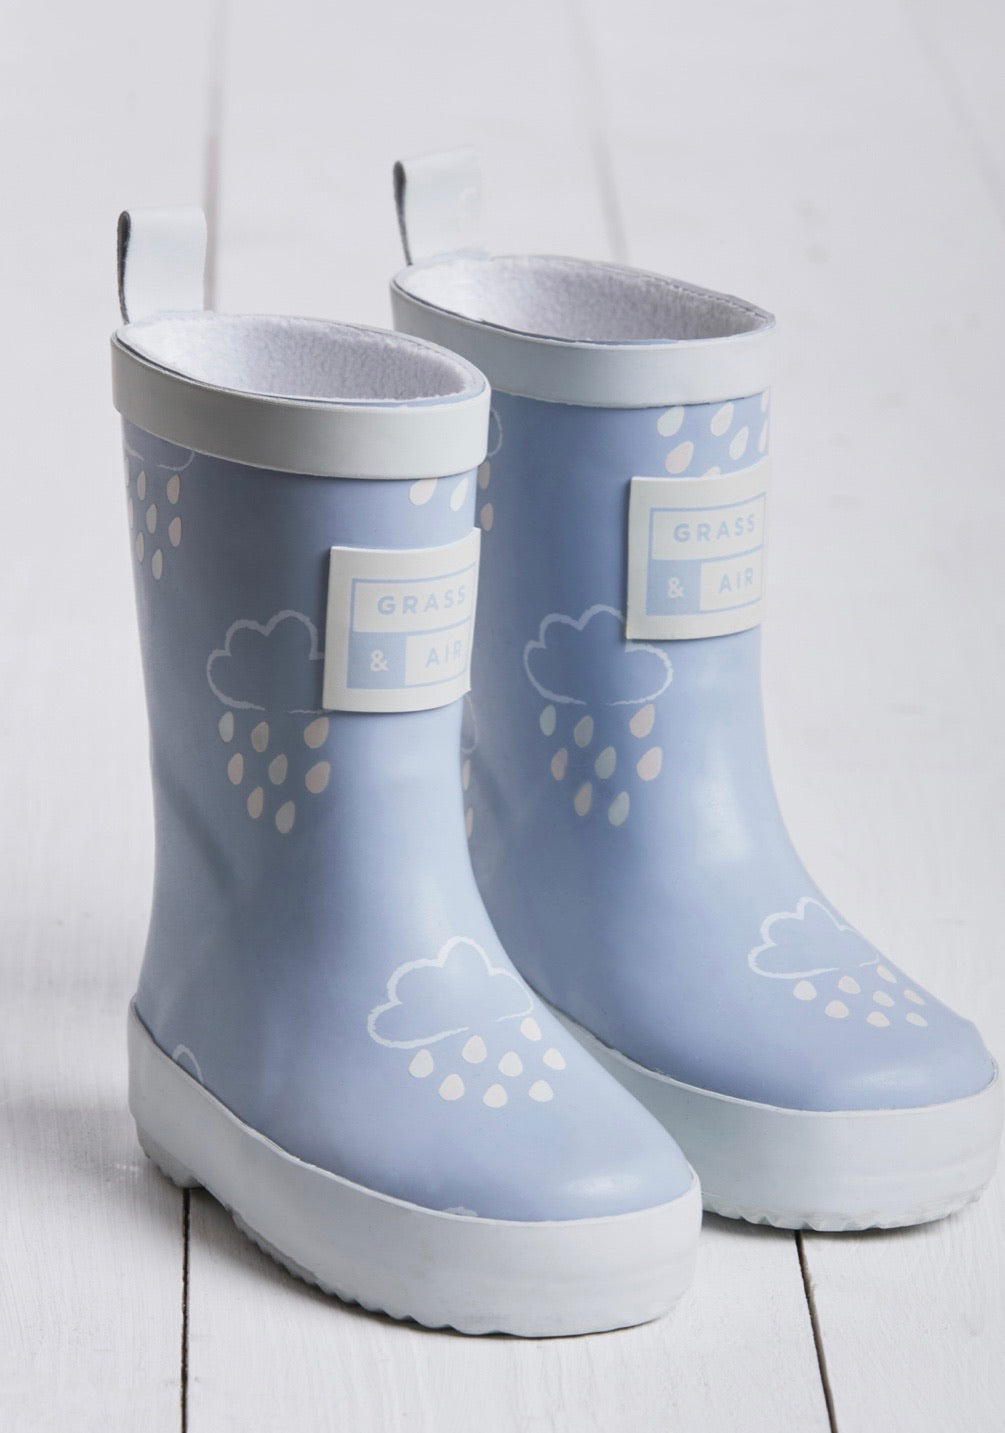 Grass and Air Colour Changing Wellies Sky Blue